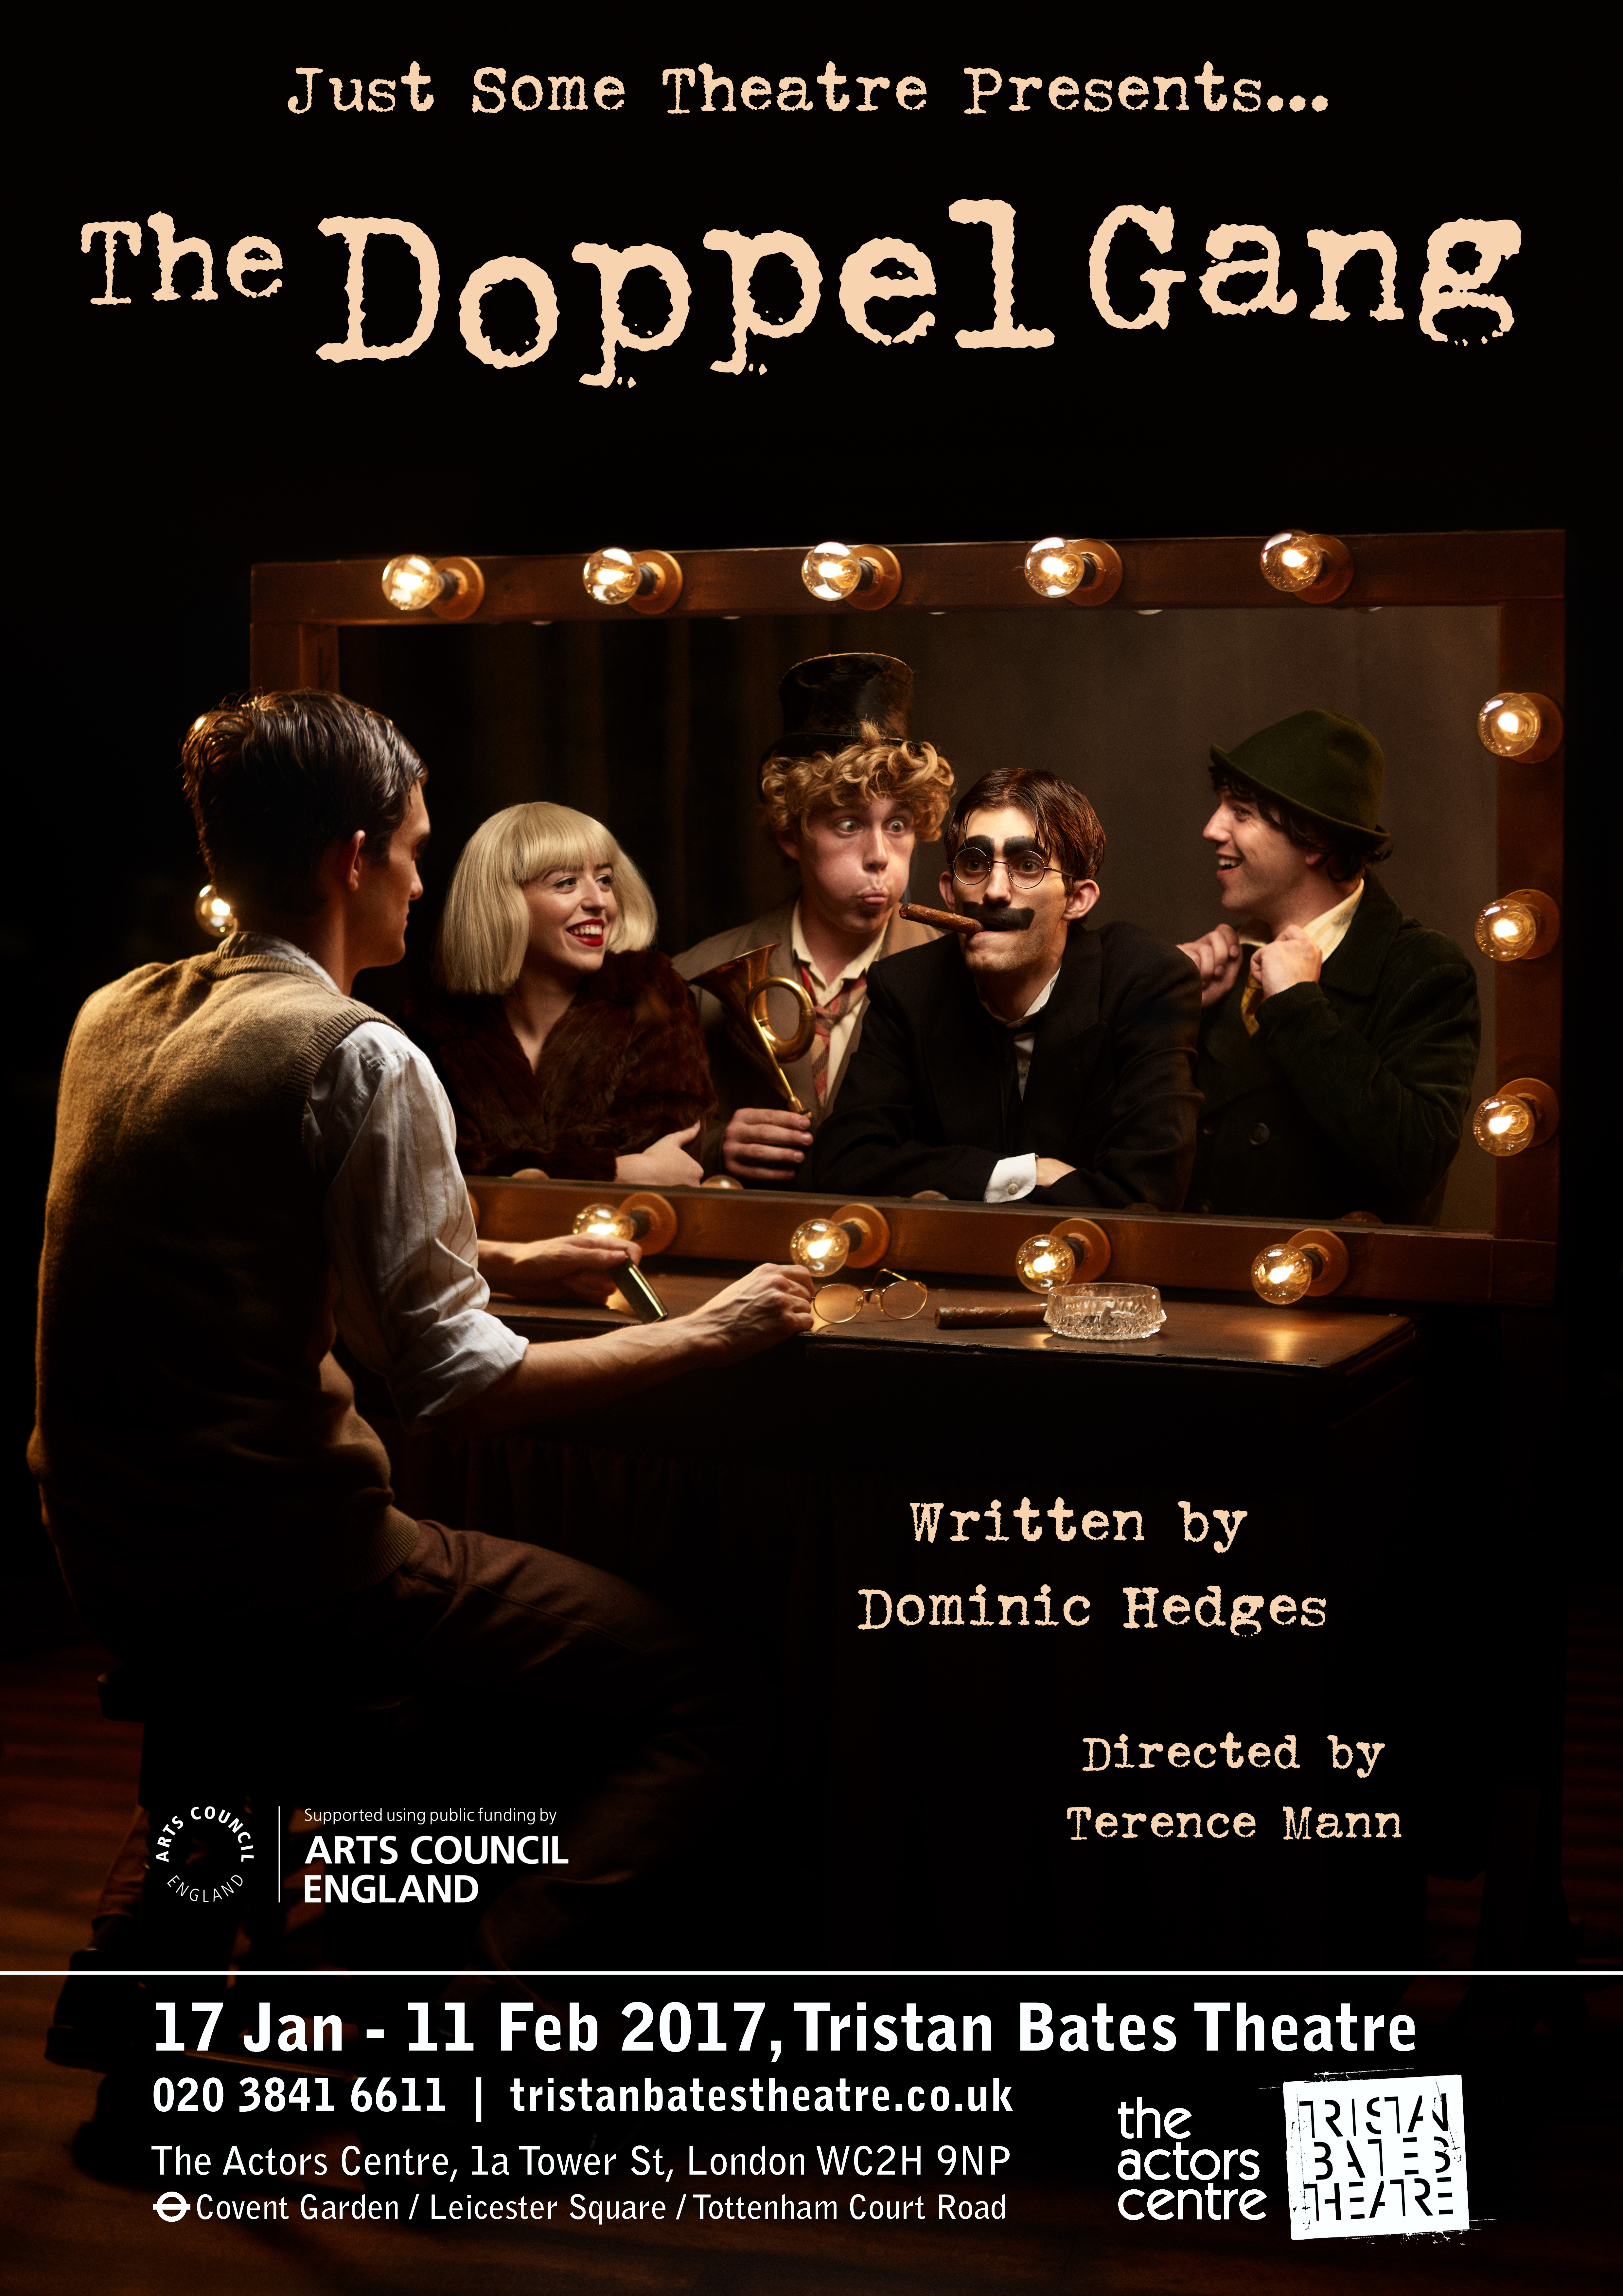 THE DOPPEL GANG - OFF WEST END